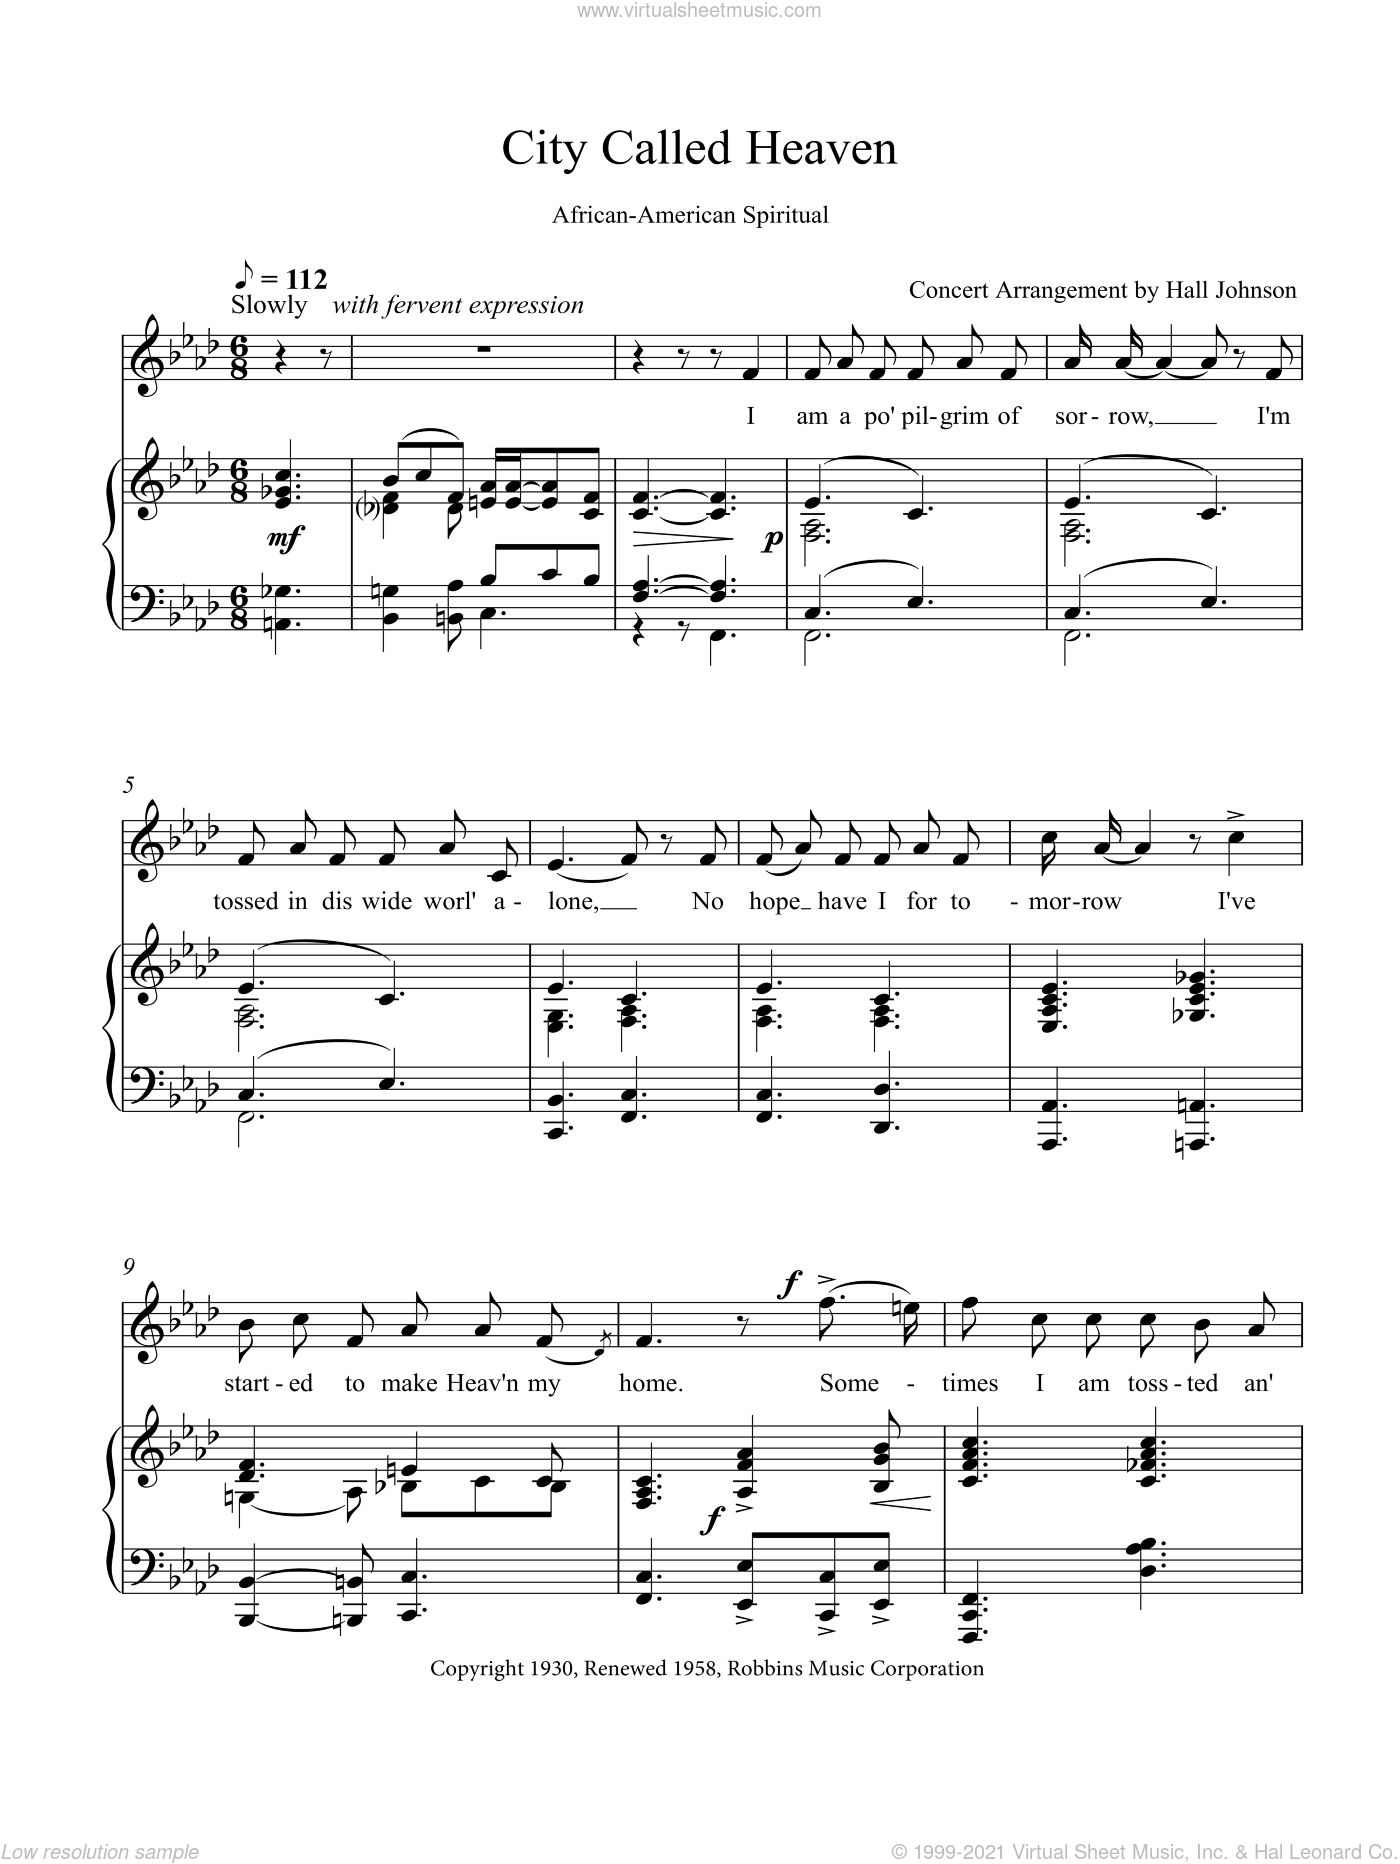 City Called Heaven (F minor) sheet music for voice and piano by Hall Johnson, classical score, intermediate skill level